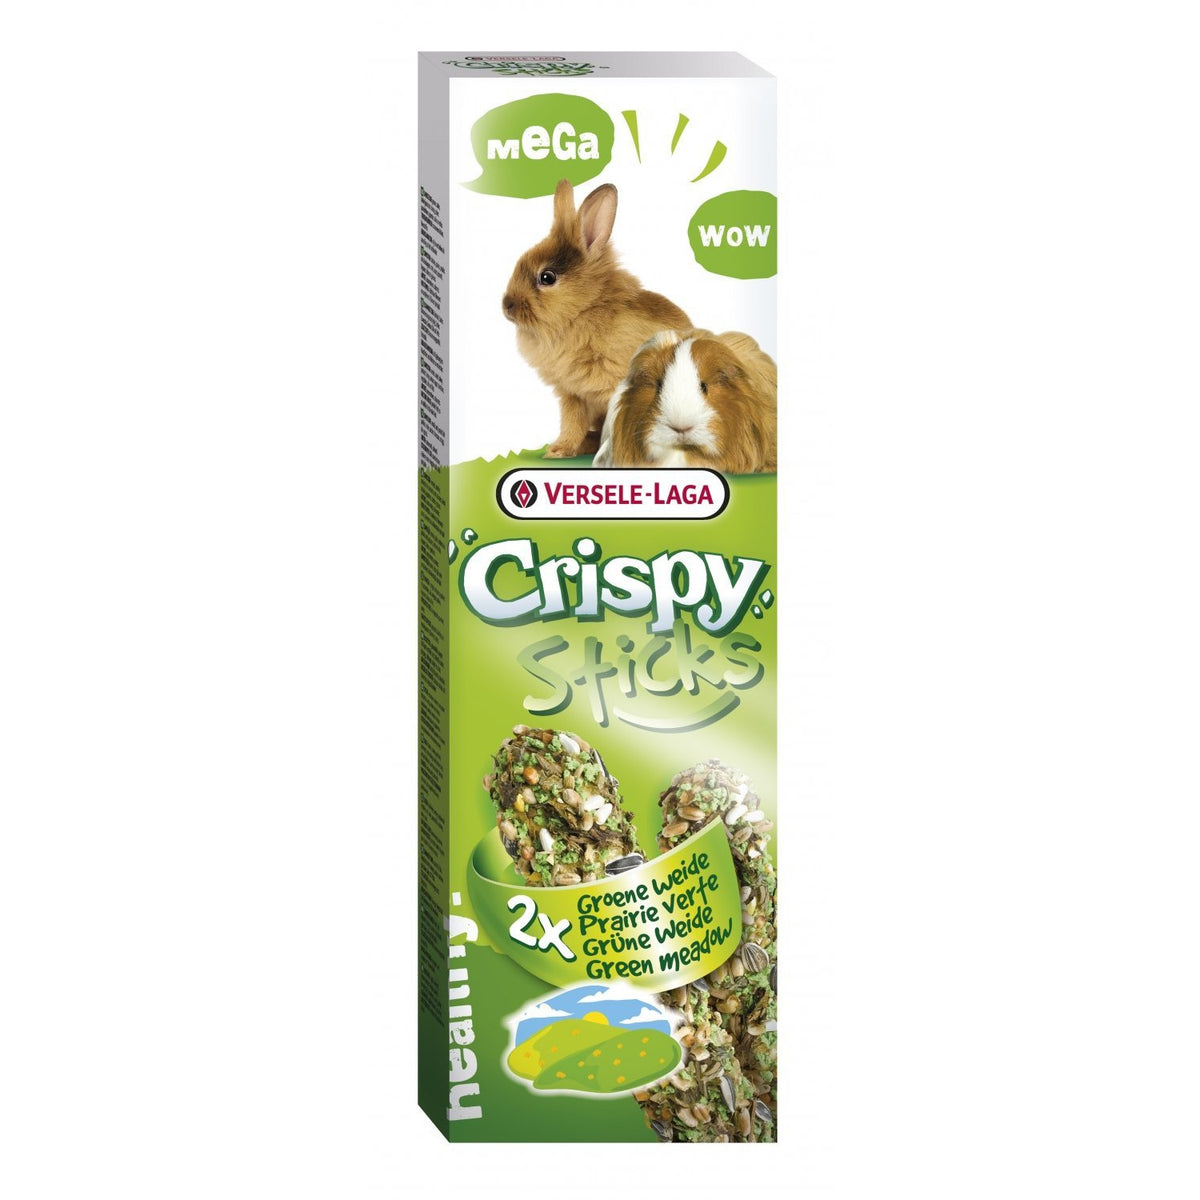 Versele Laga Crispy Sticks rabbits and guinea pigs Green Meadow